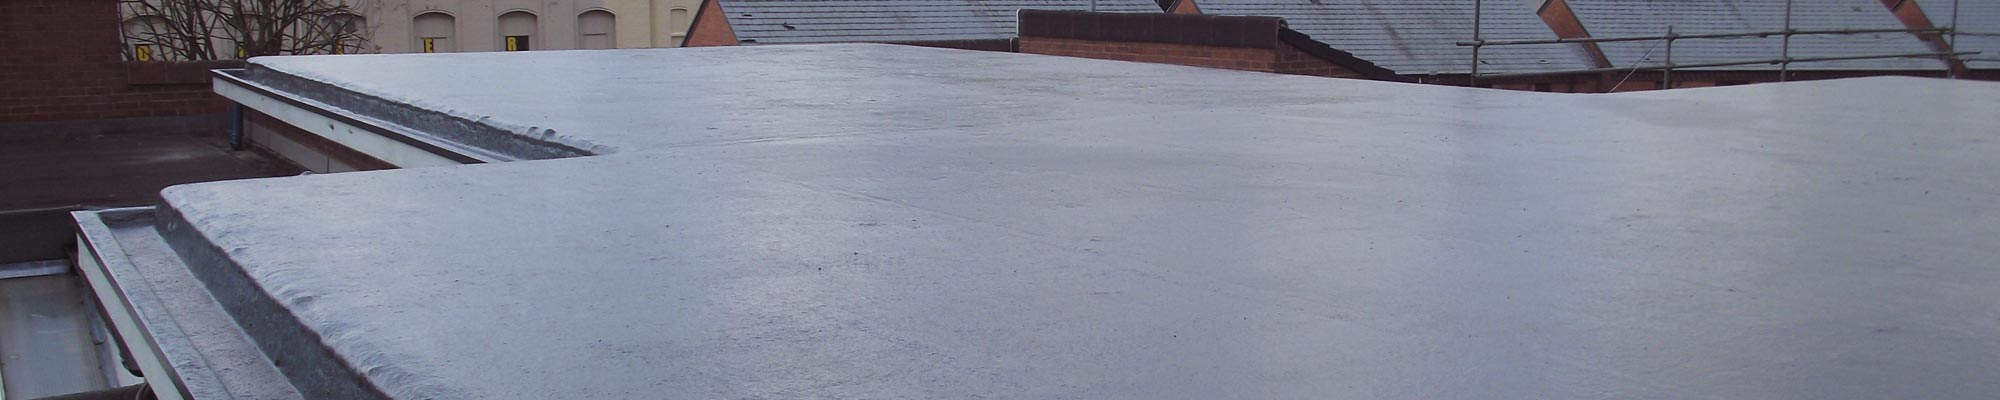 Domestic and commercial flat roofing services from Proctor Roofing